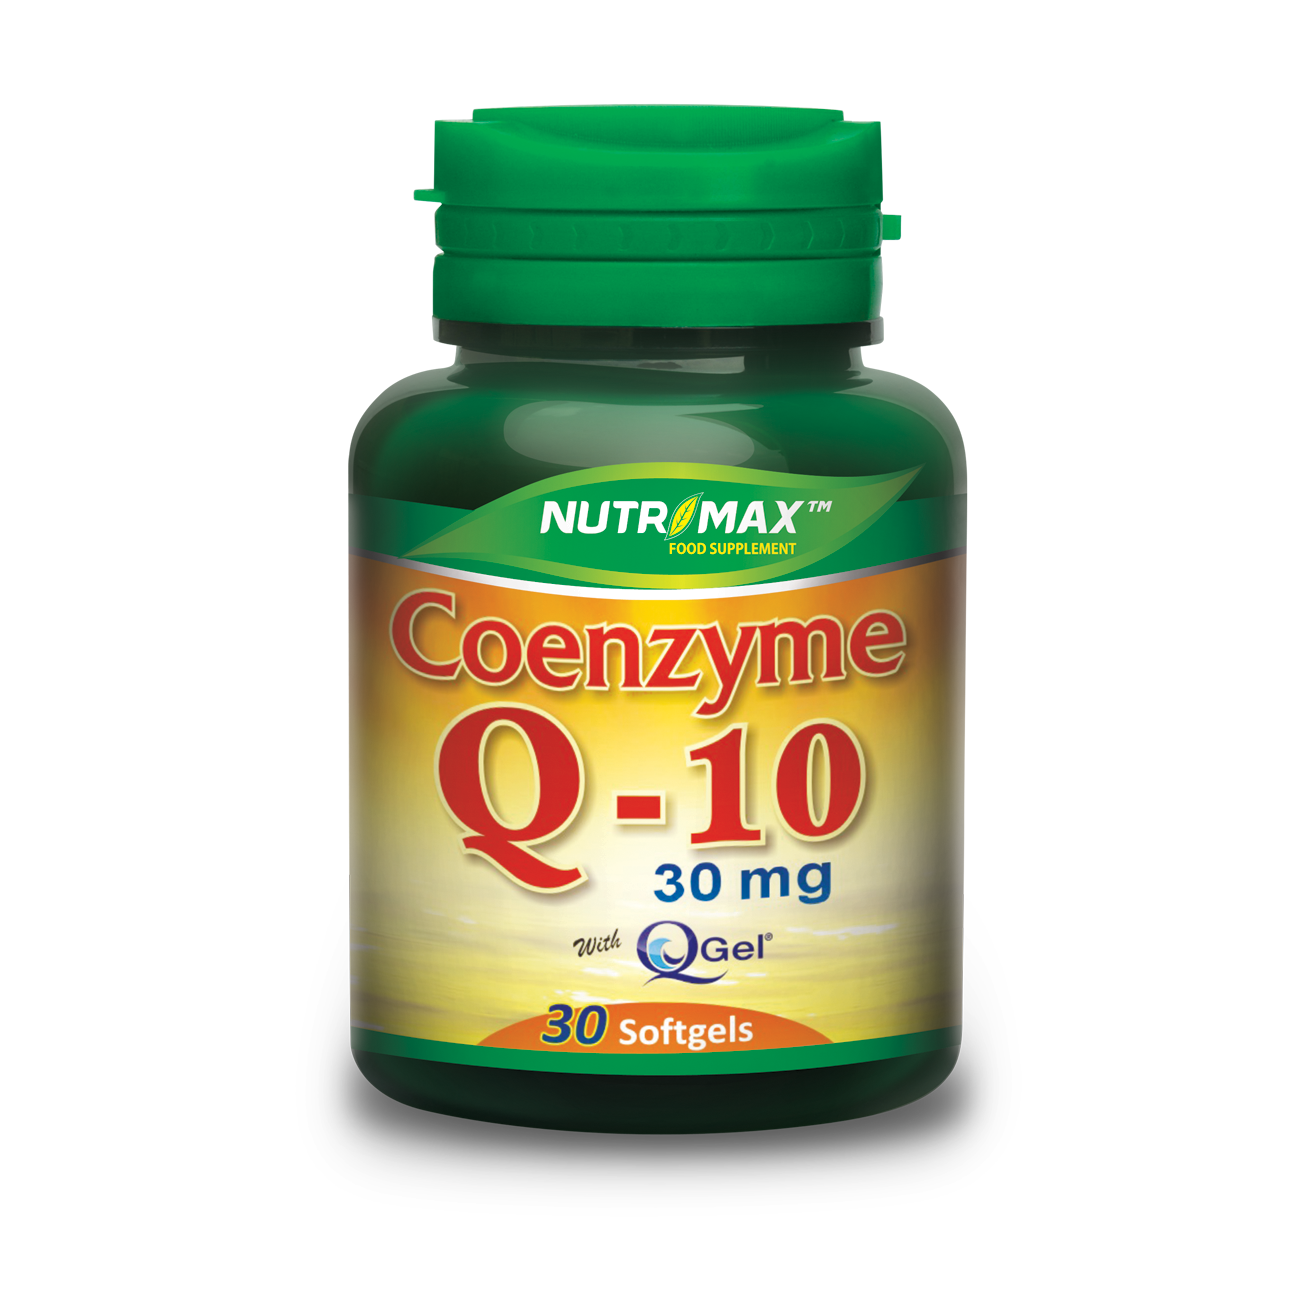 Nutrimax Coq-10 30 Mg 30 Softgels